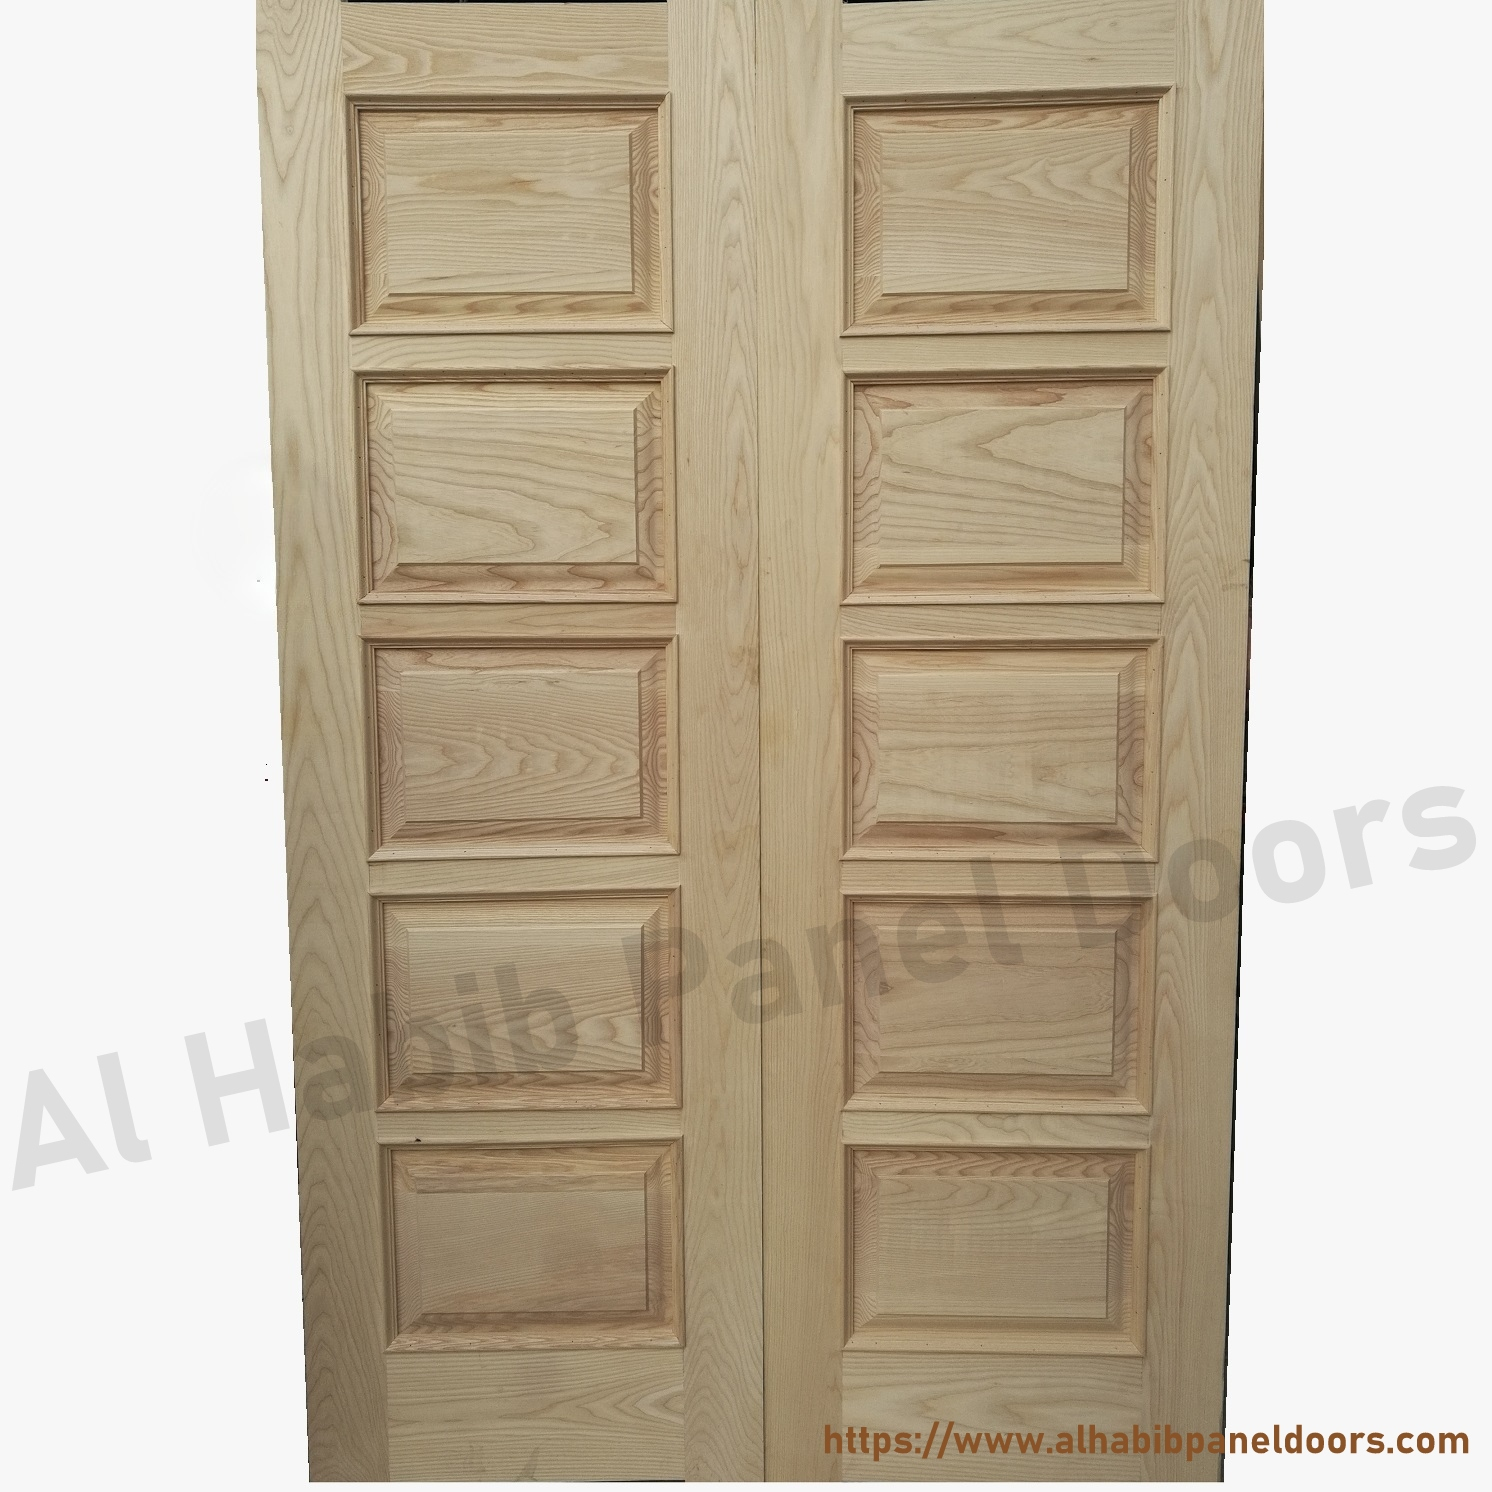 Double door main door designs joy studio design gallery for Double door wooden door